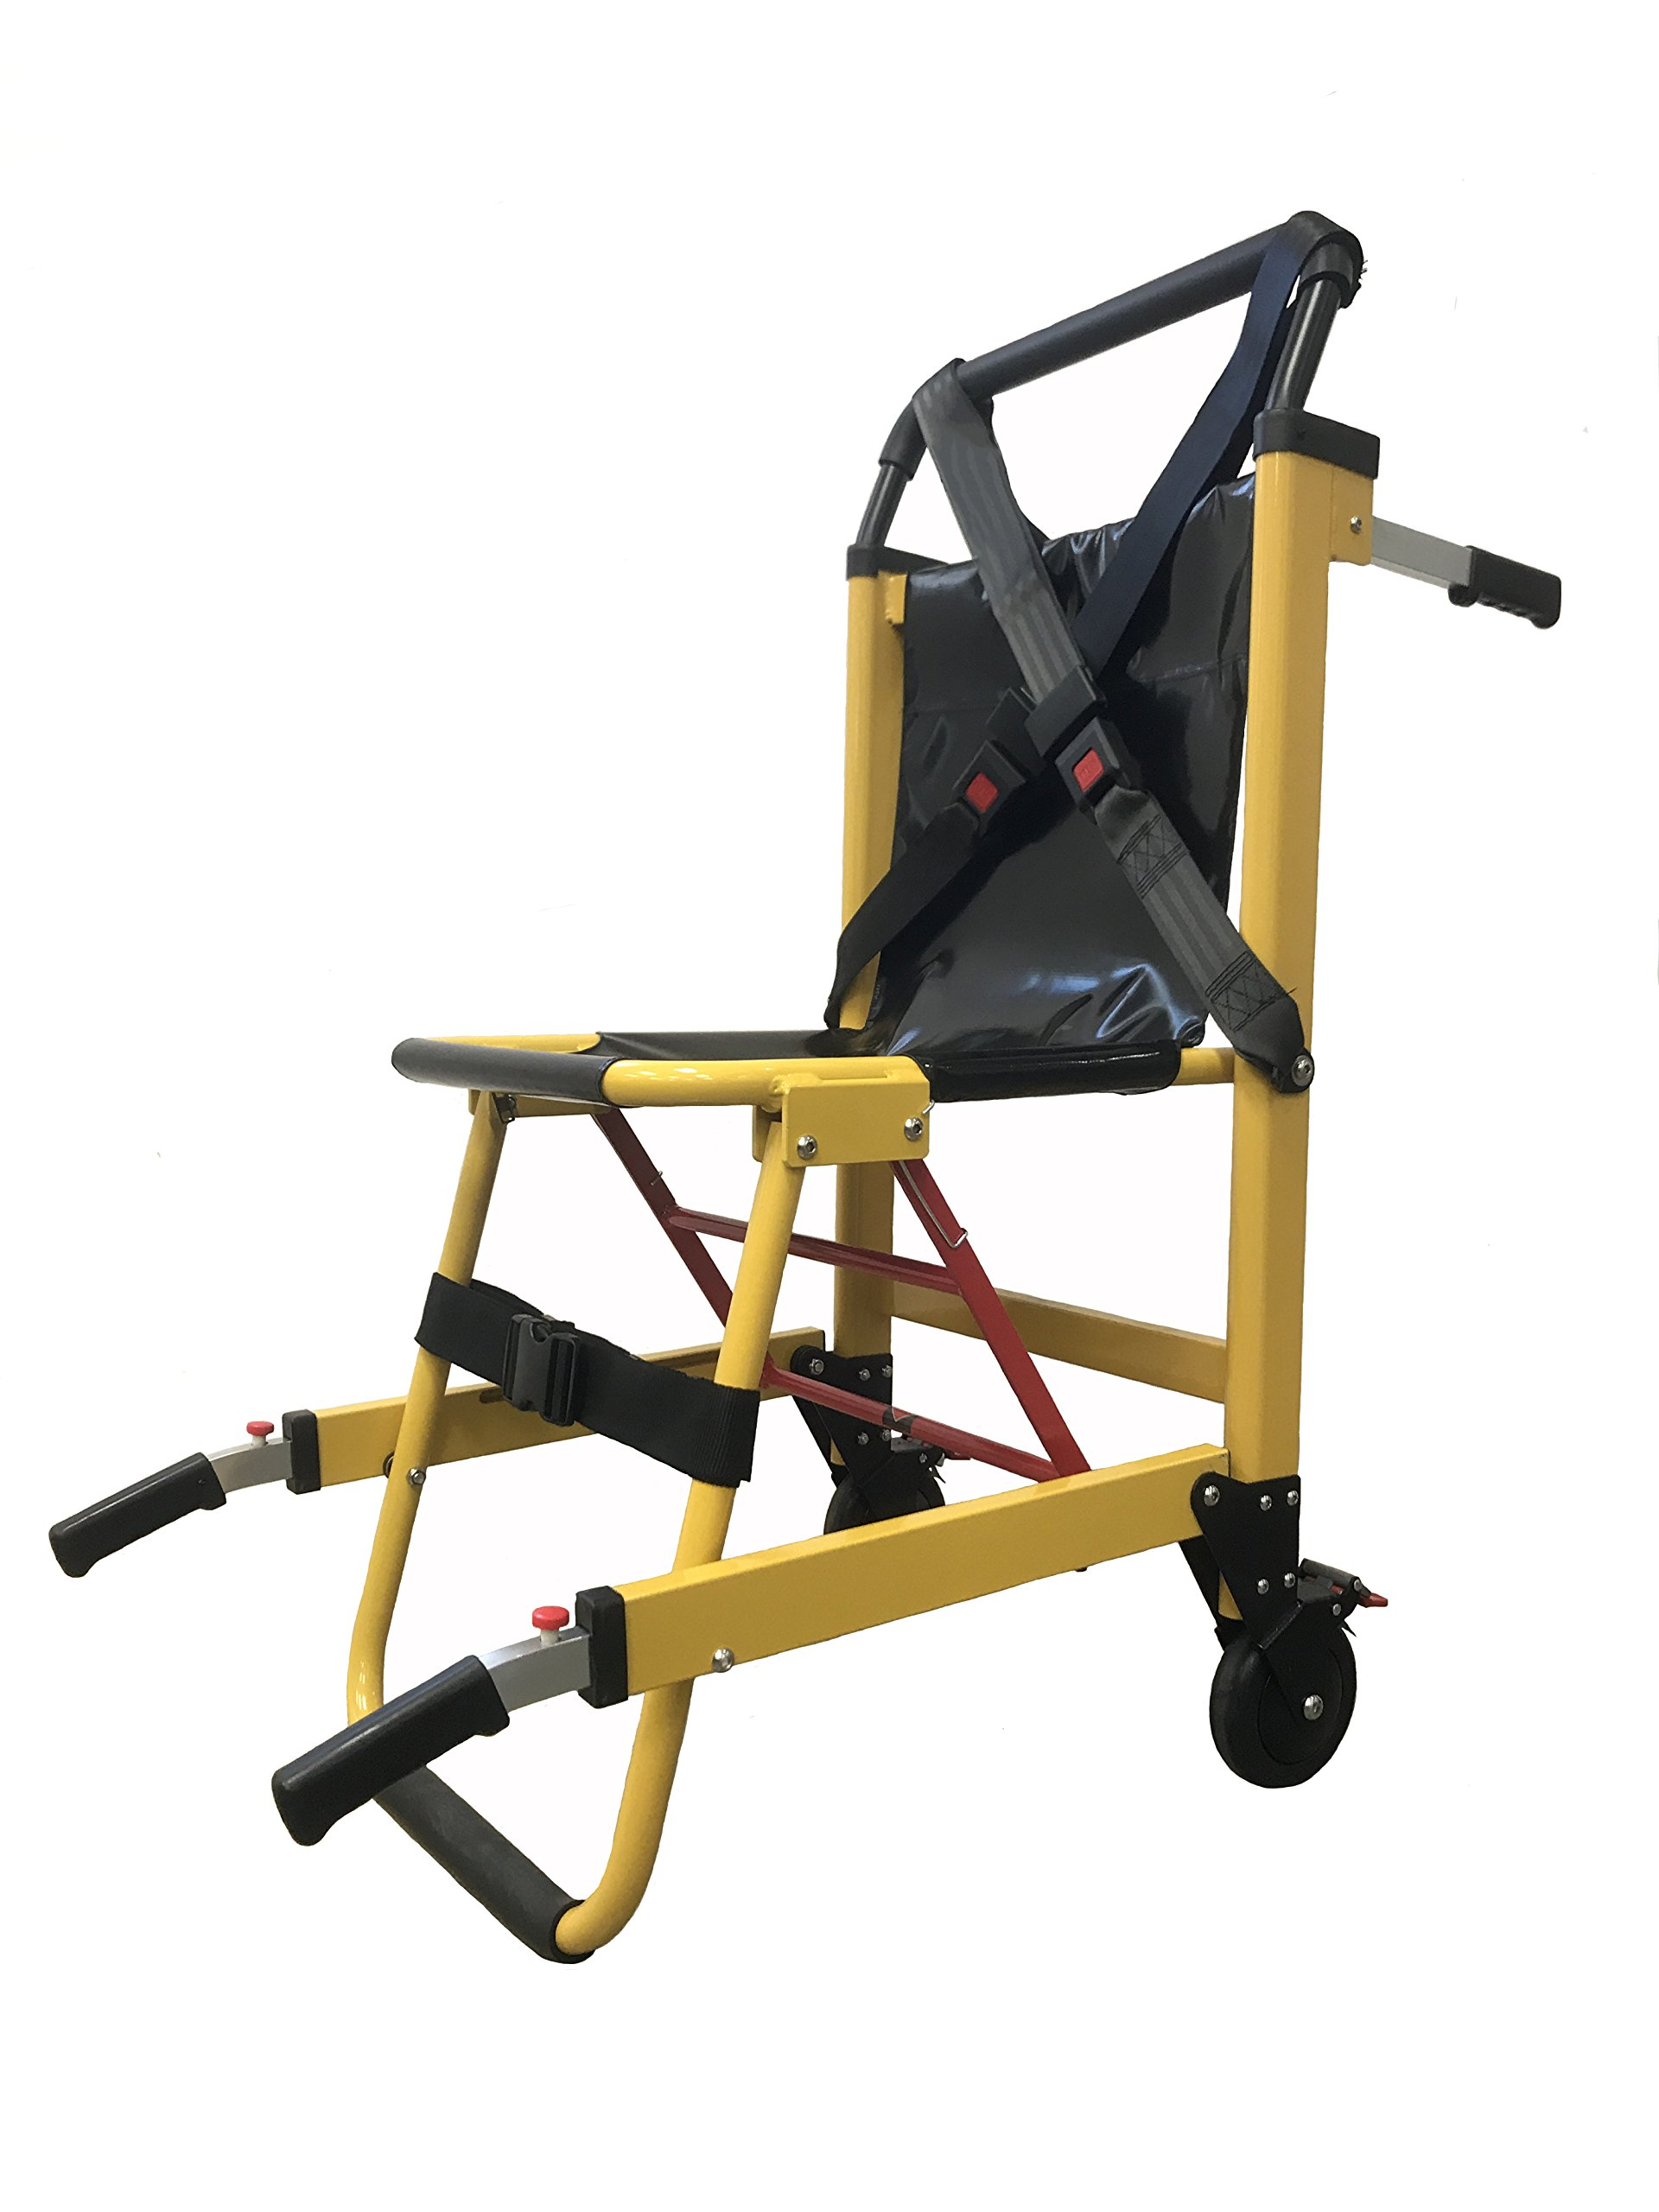 LINE2design EMS Stair Chair - Medical Emergency Patient Transfer - 2-Wheel Deluxe Evacuation Chair - Ambulance Transport Folding Stair Chair Lift - Yellow   Load Capacity: 400 lbs